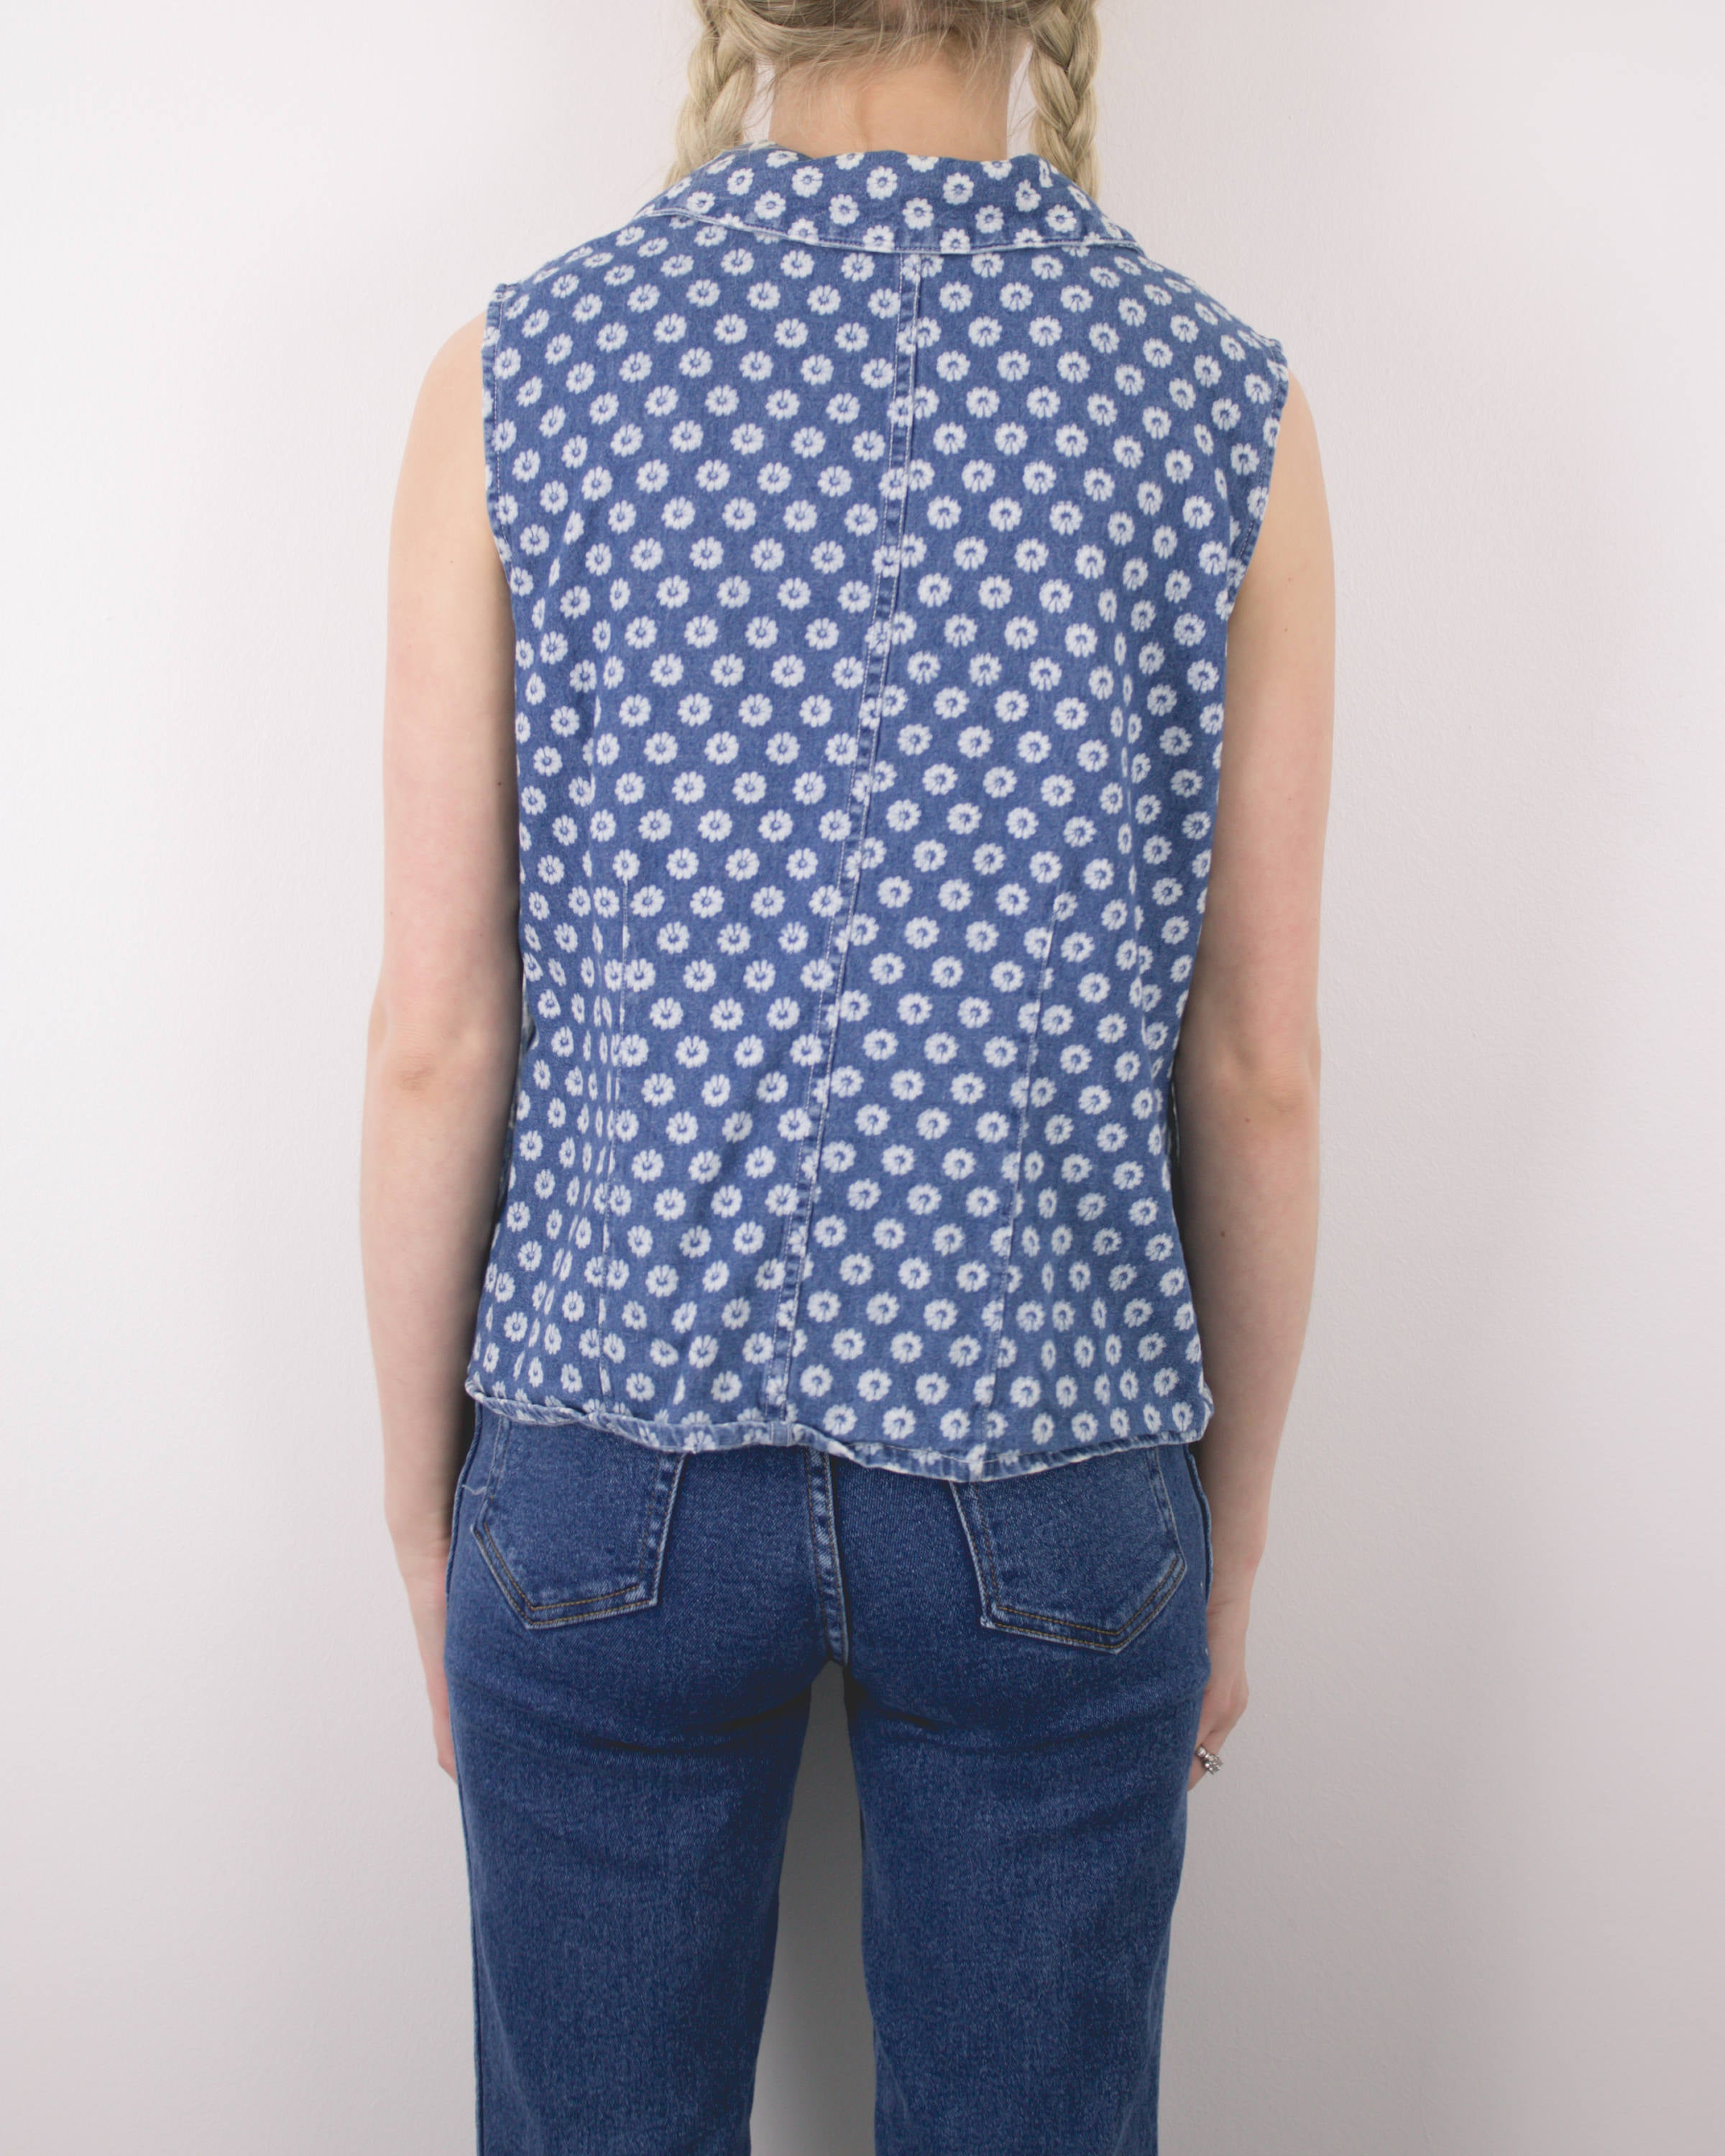 Vintage Daisy Denim Sleeveless Blouse